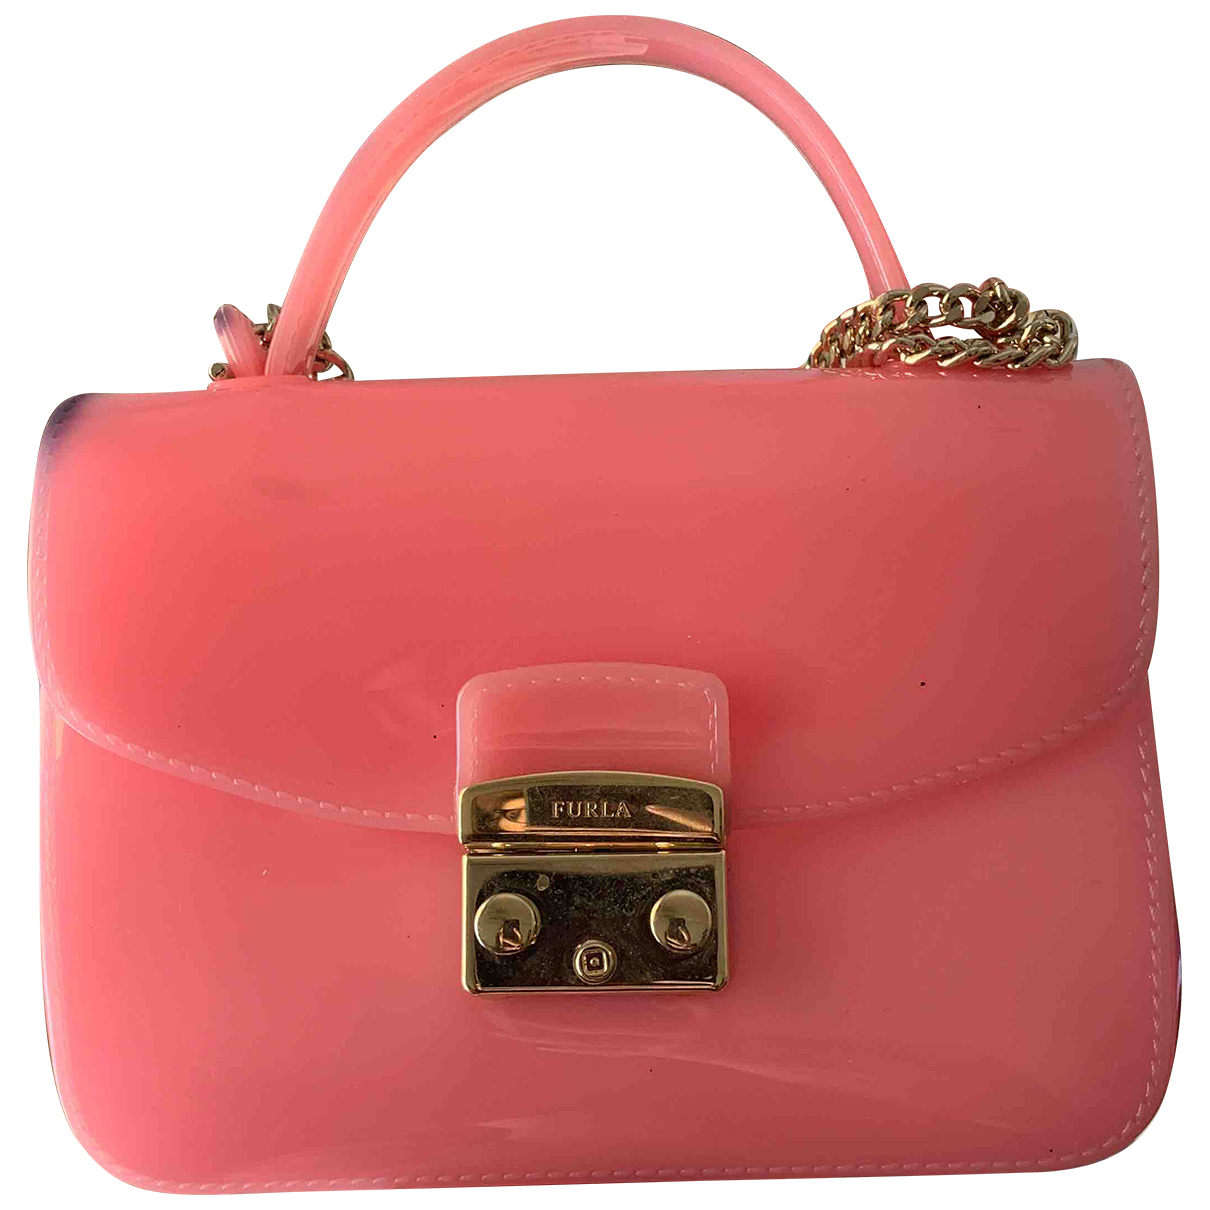 Furla Candy Bag Pink handbag for Women N